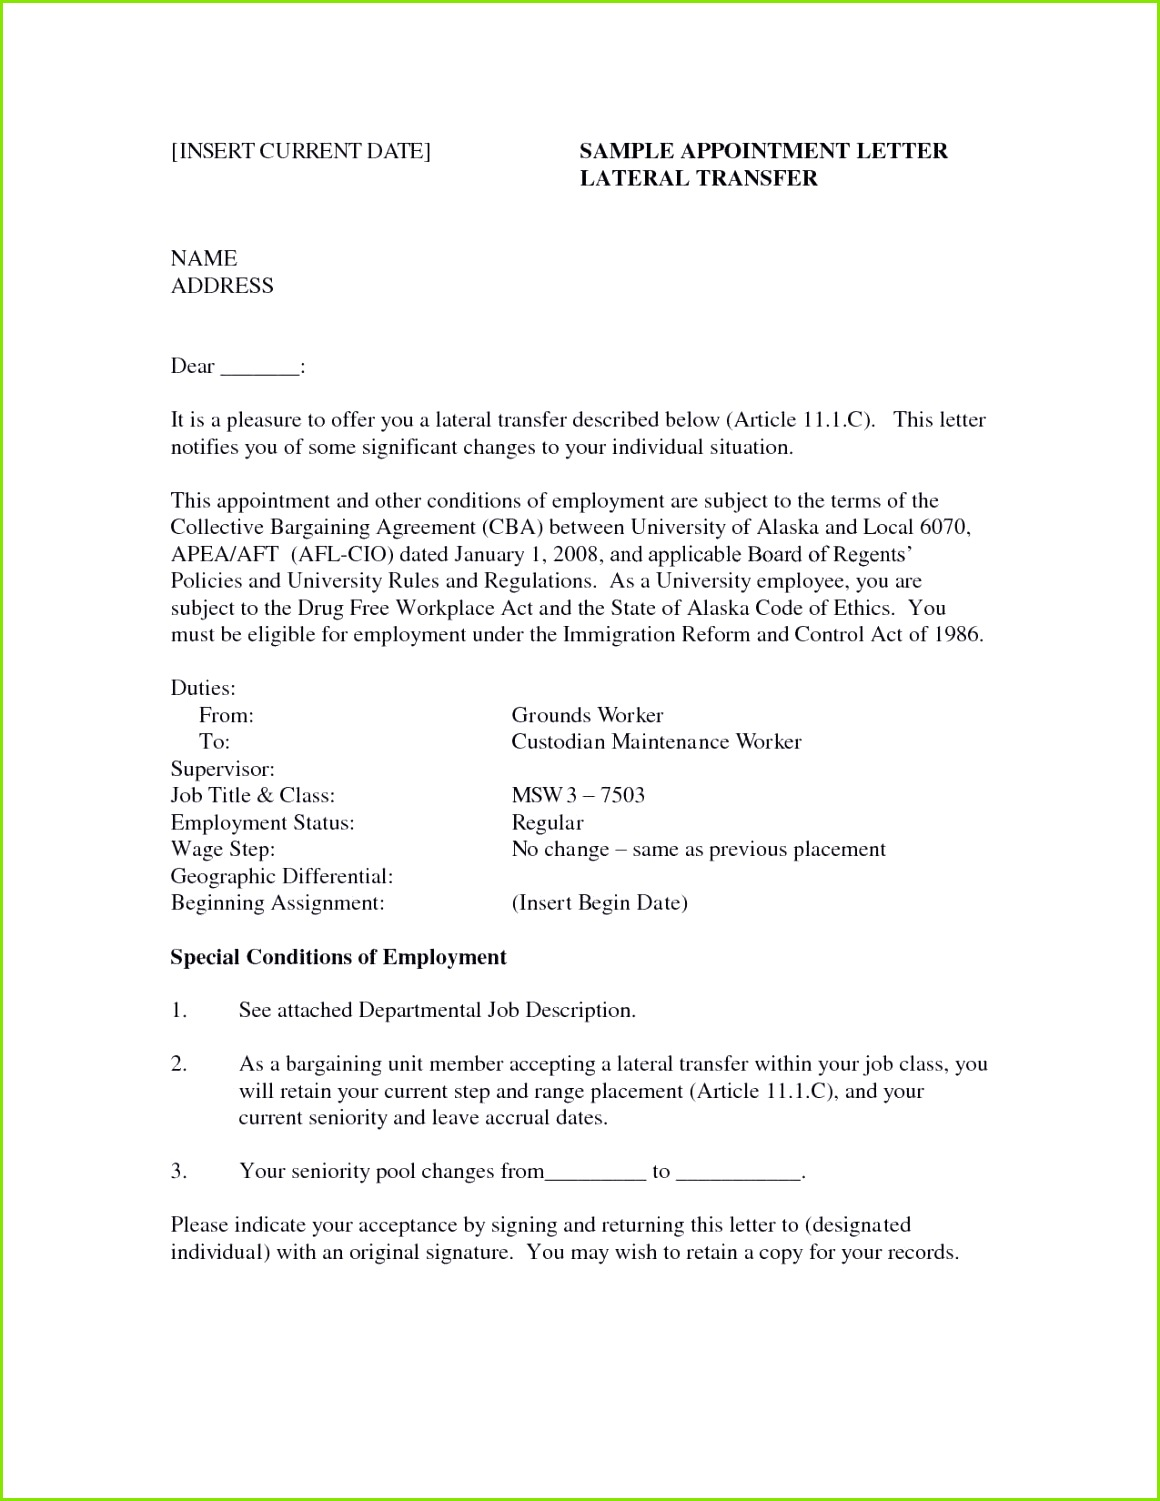 resumes and cover letters inspirational cover letter template word 2014 fresh relocation cover letters od of Kündigung Vorlage Mietvertrag